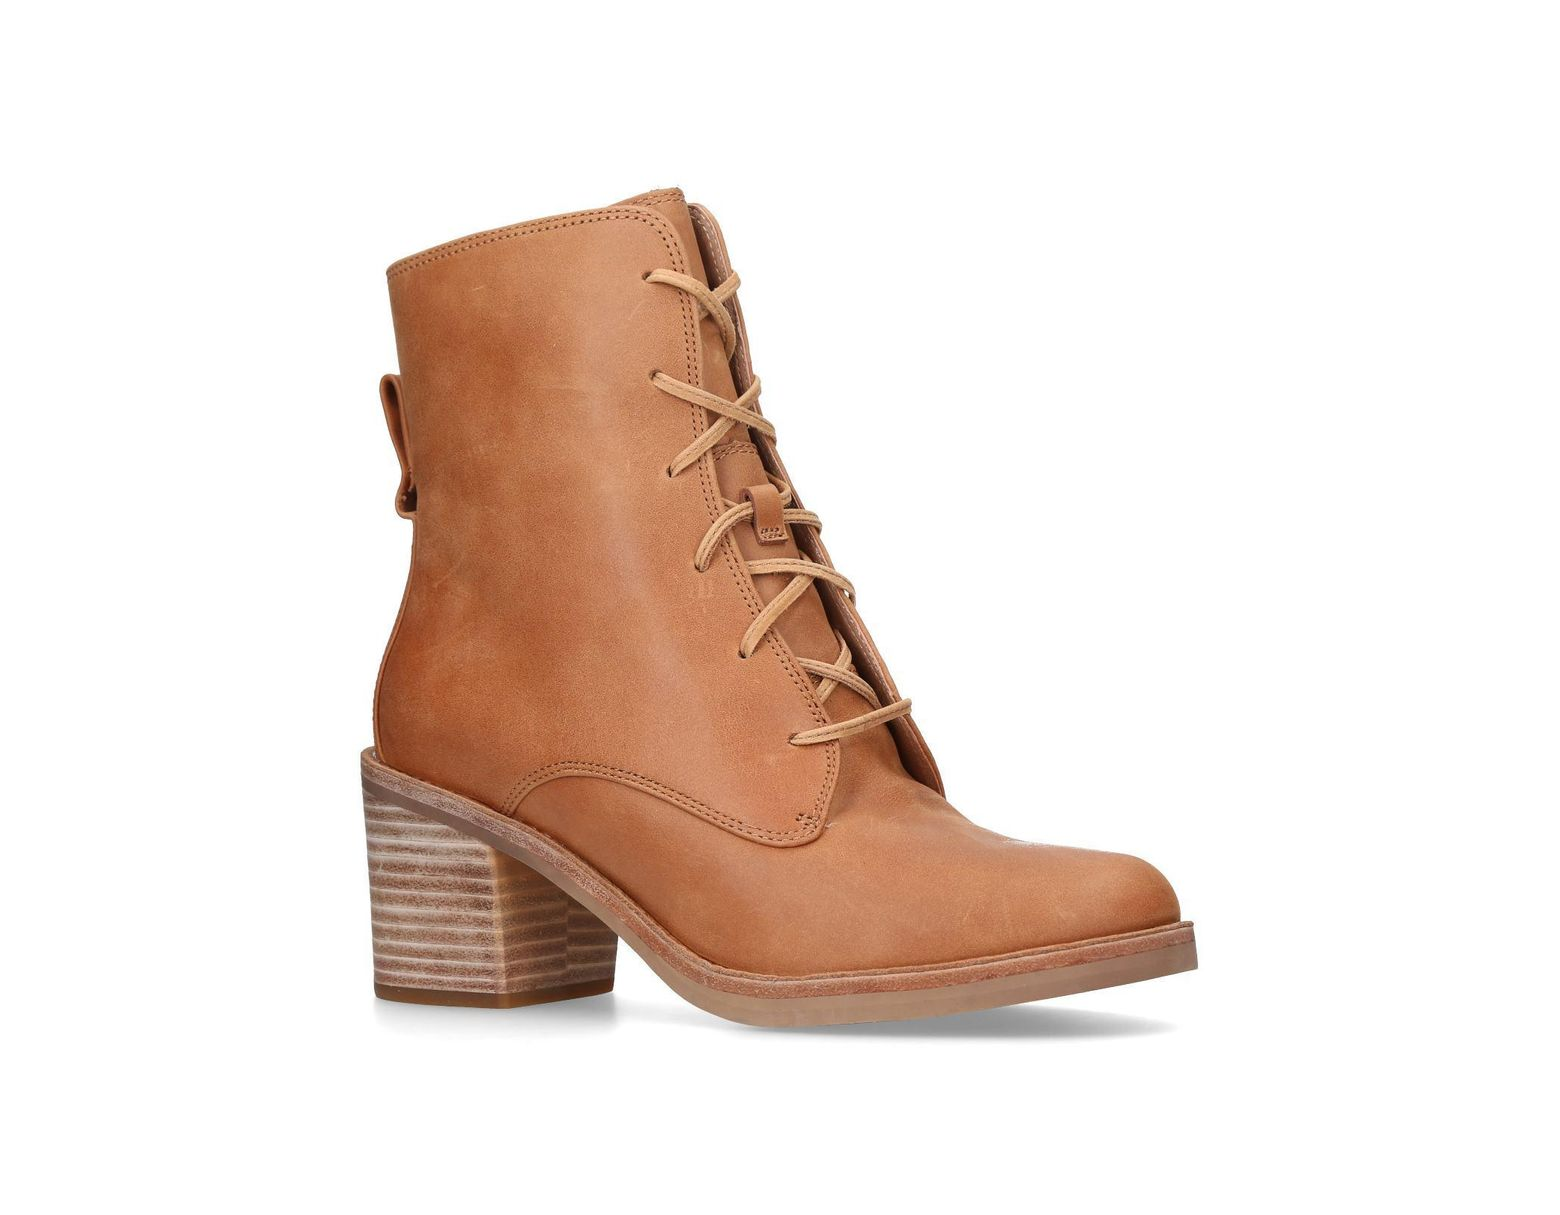 4867e99b8b3 Women's Brown Australia Oriana Tan Leather & Other Ankle Boots